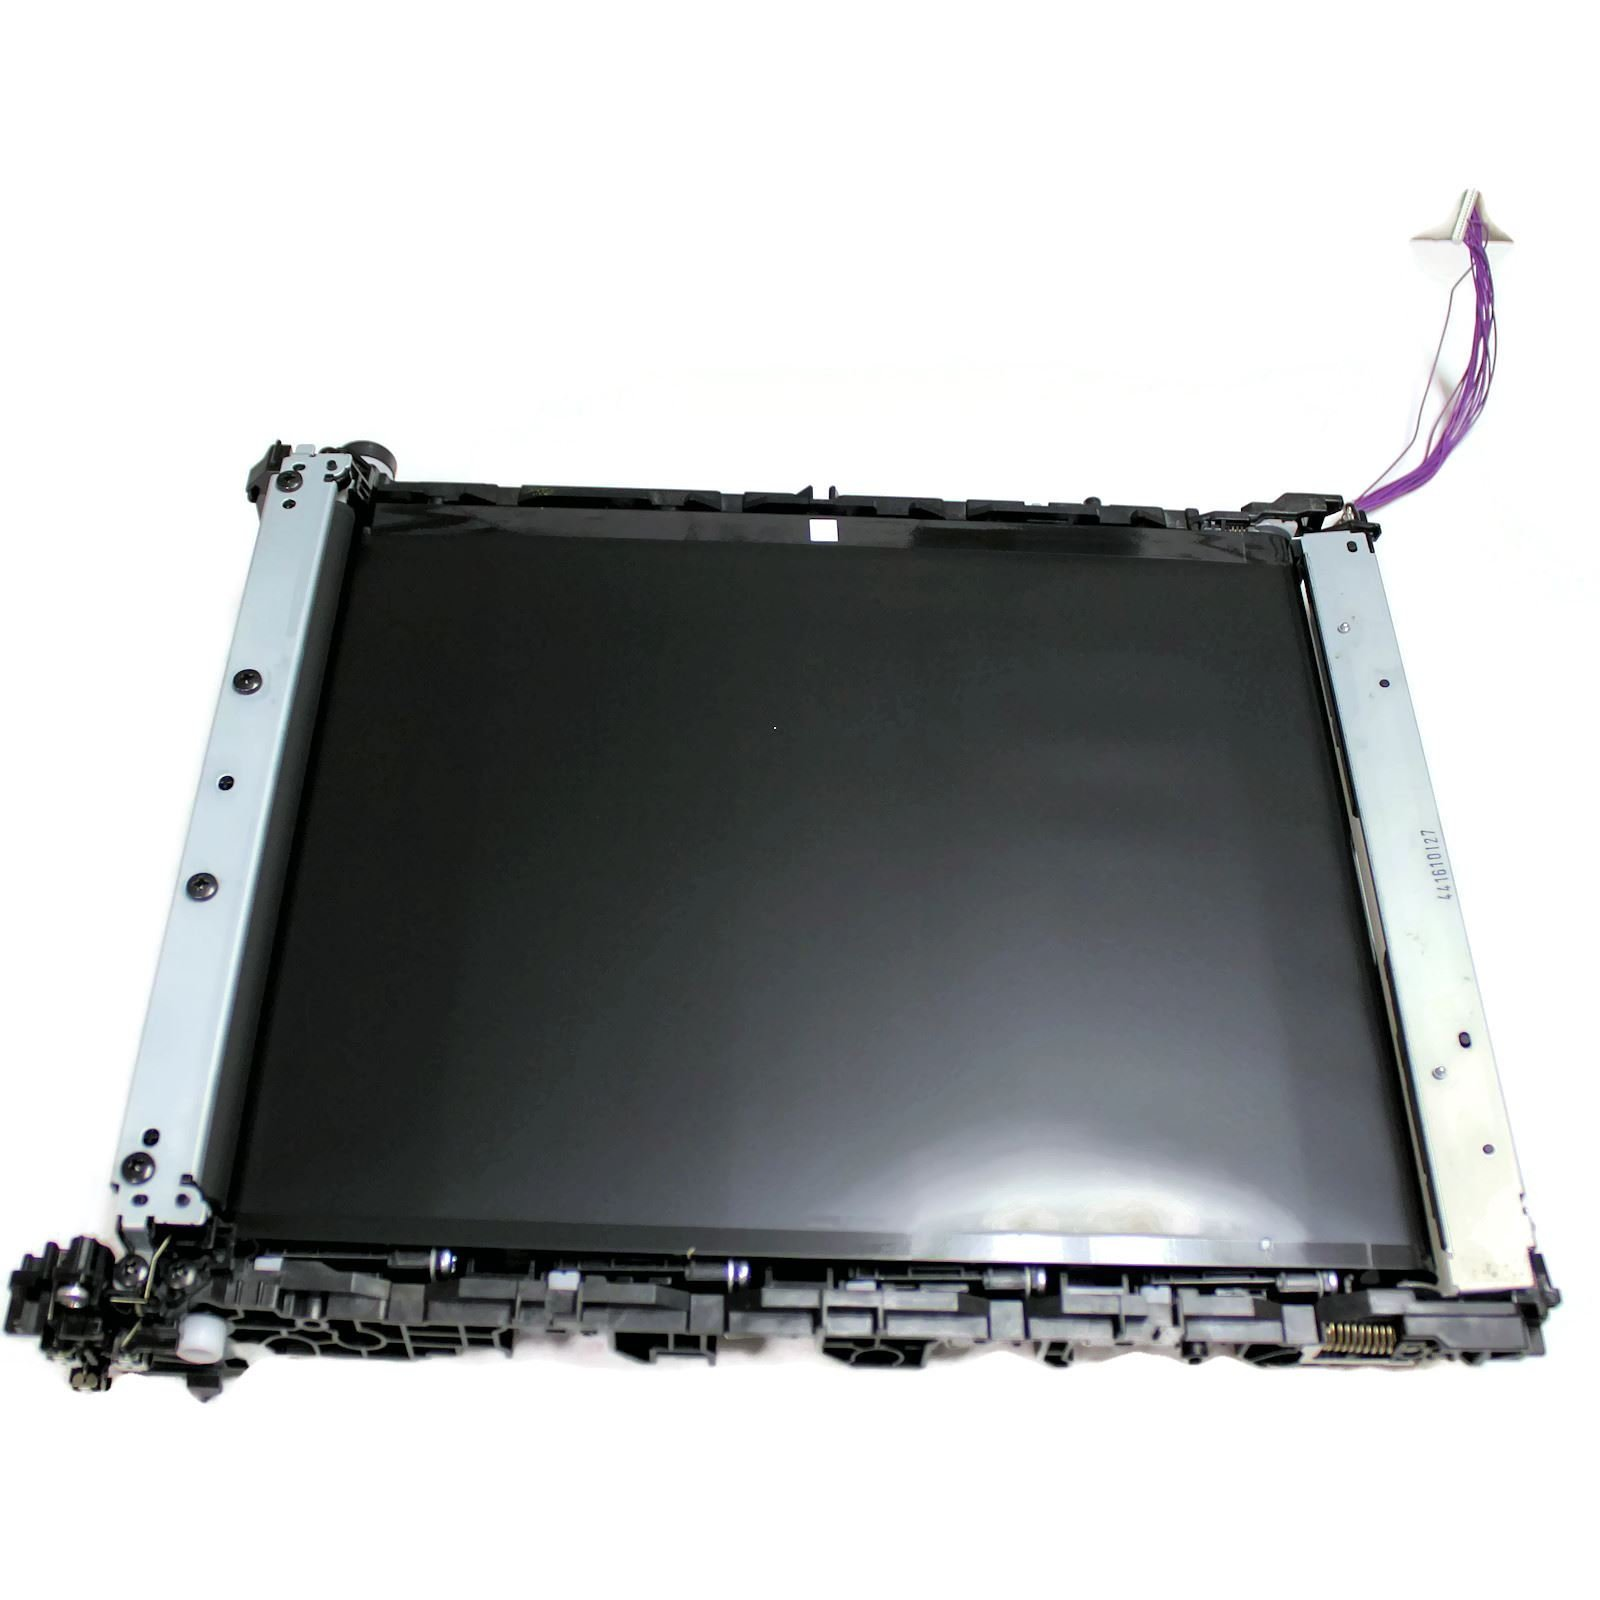 Remanufactured Transfer Belt RM1-8777-000 for Canon ImageClass MF8280CW I-Sensys MF8280CW LBP-7110CW LBP-7100CN LBP-7110Cw Printer